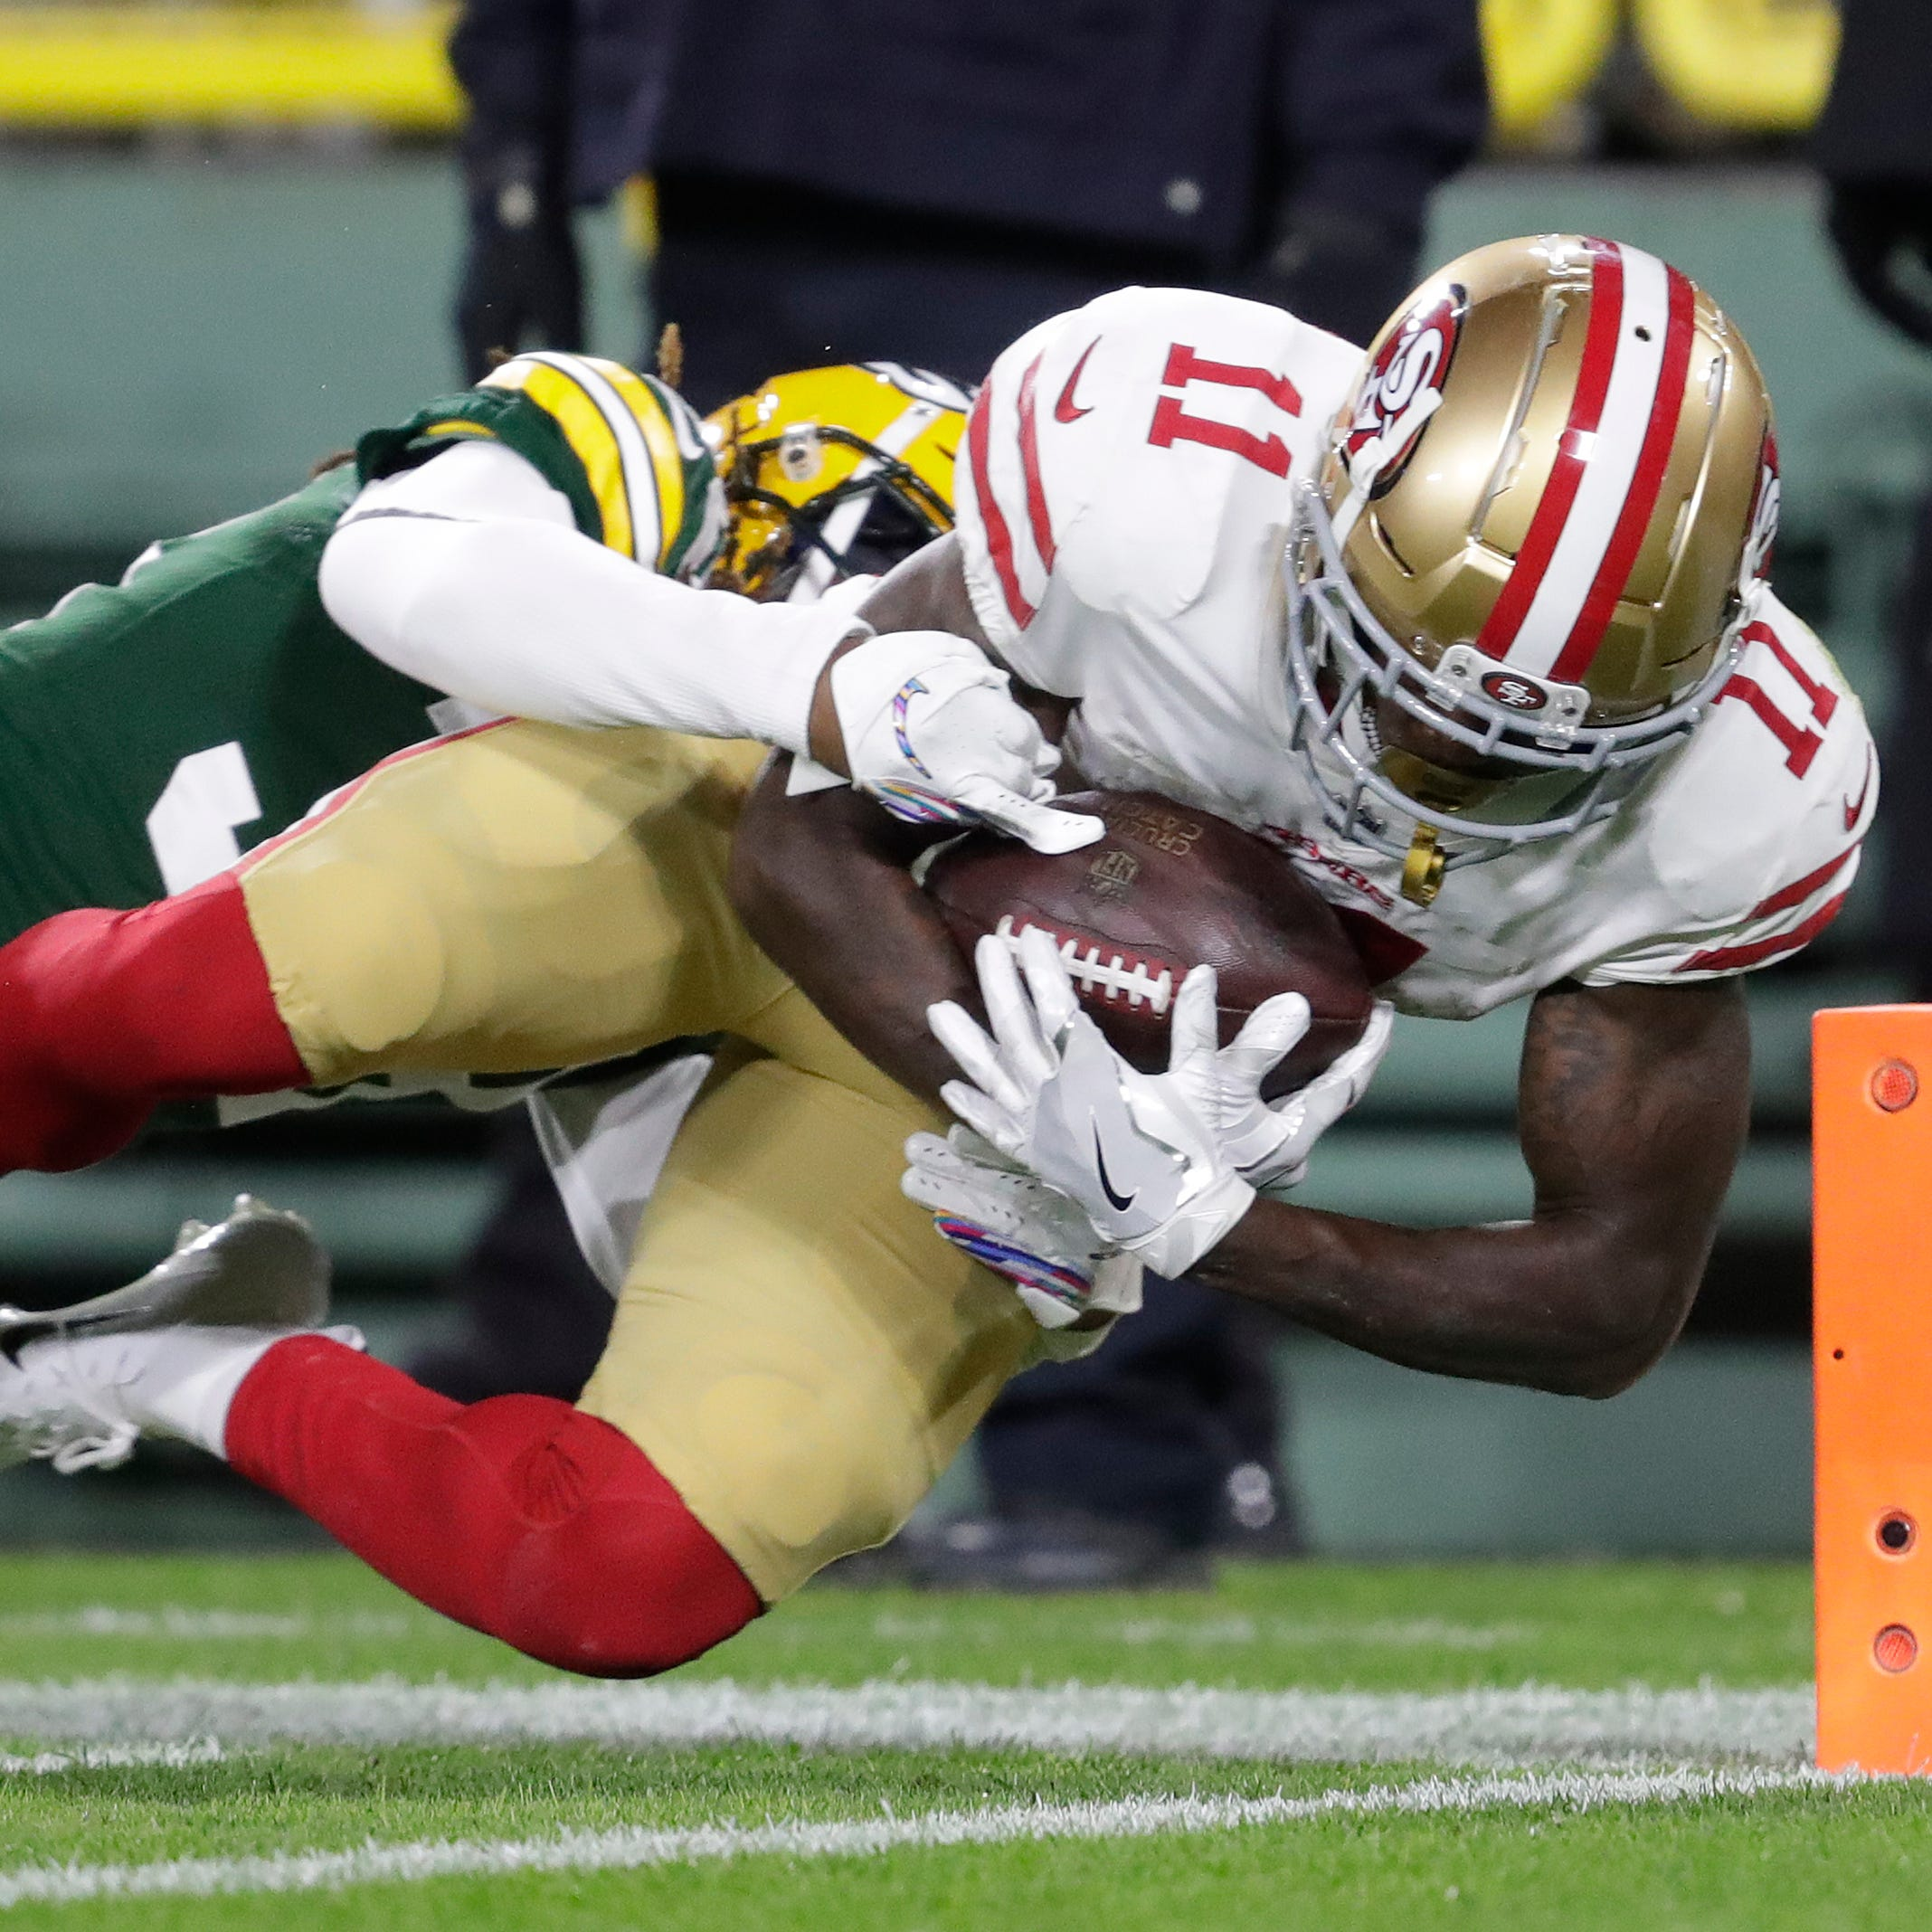 San Francisco 49ers wide receiver Marquise Goodwin (11) dives into the end zone for a touchdown against Green Bay Packers cornerback Tramon Williams (38) in the second quarter during their football game Monday, Oct. 15, 2018, at Lambeau Field in Green Bay, Wis. 